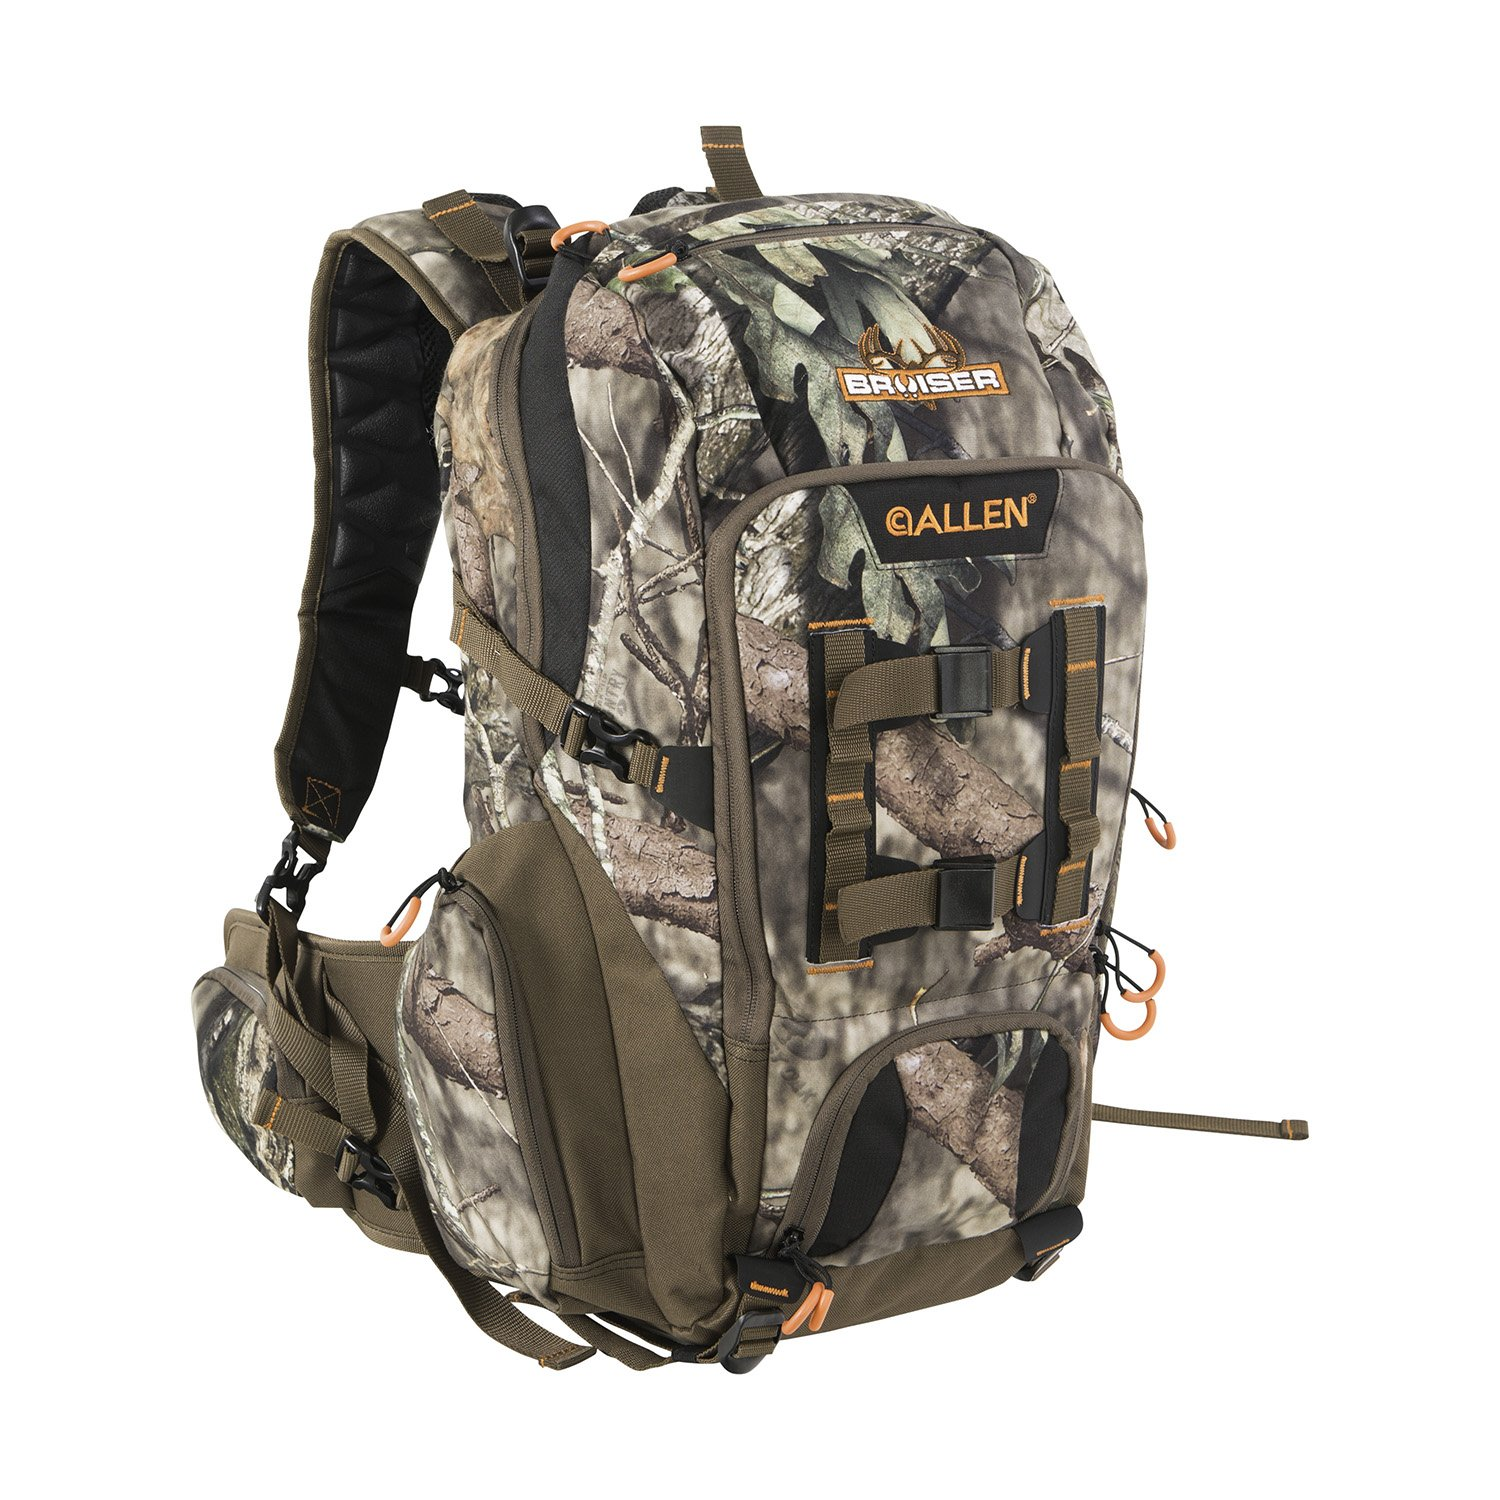 Allen Gearfit Pursuit Bruiser Whitetail Hunting Daypack Mossy Oak Break-Up Country Gearfit Pursuit Bruiser Whitetail Daypack Mossy Oak Break-Up Country The Allen Company 19175